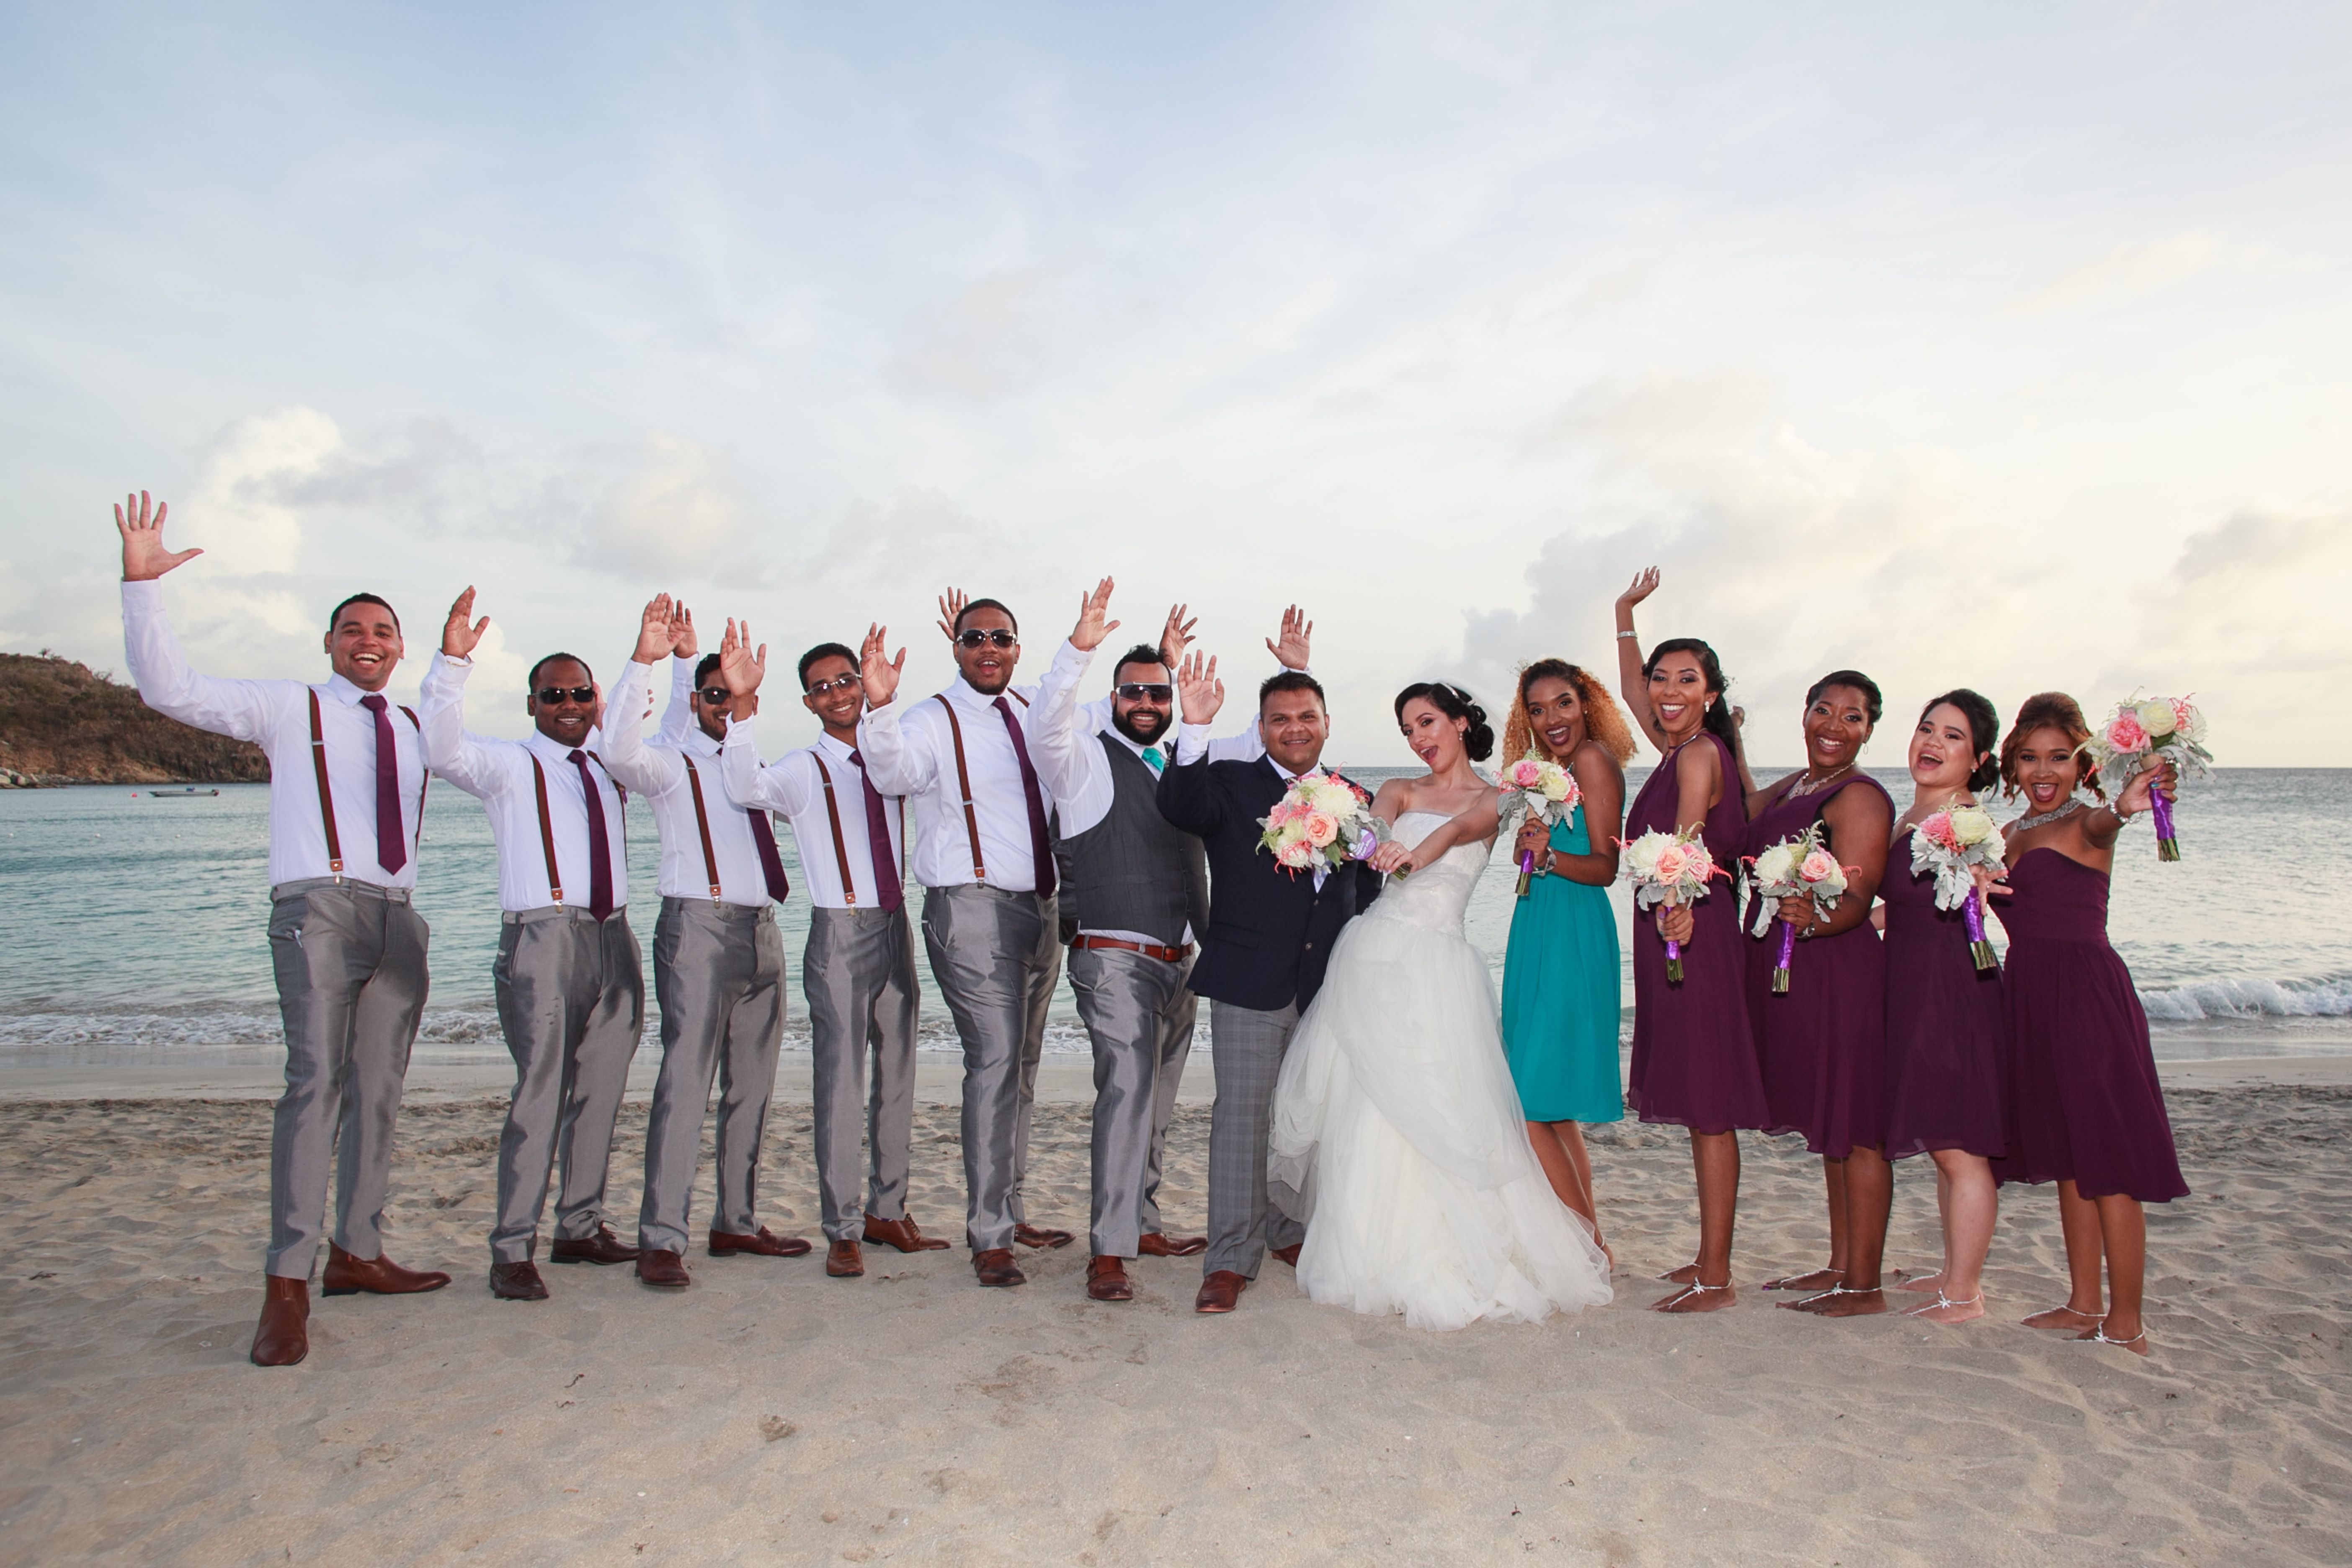 Dreaming Of A Destination Wedding Off The Beaten Path Then You Won T Want